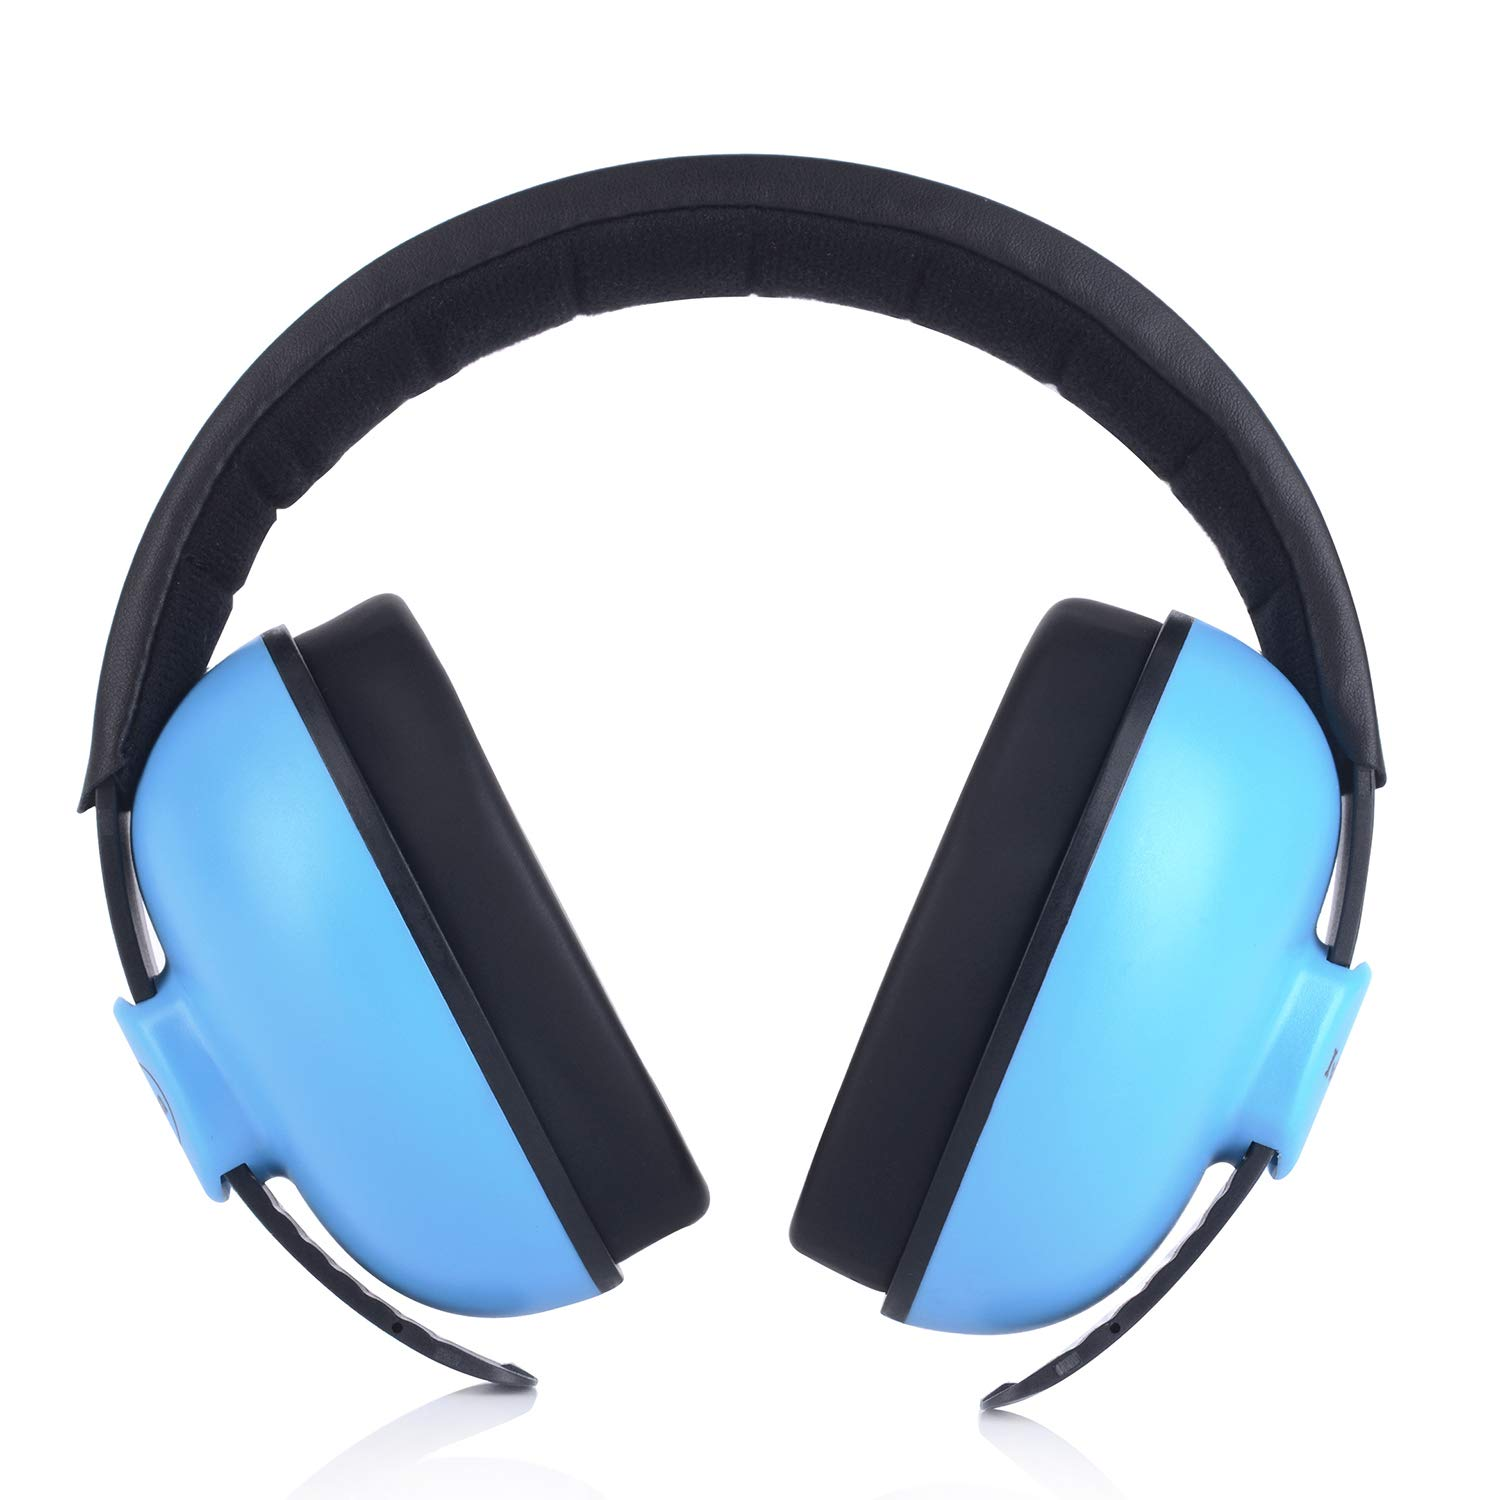 Baby Headphones Safety Ear Muffs Noise Reduction for Newborn Infant Autism Kids Toddlers Sound Cancelling Headphones for Sleeping Studying Airplane Concerts Movie Theater Fireworks, Blue by ILOVEUS (Image #9)